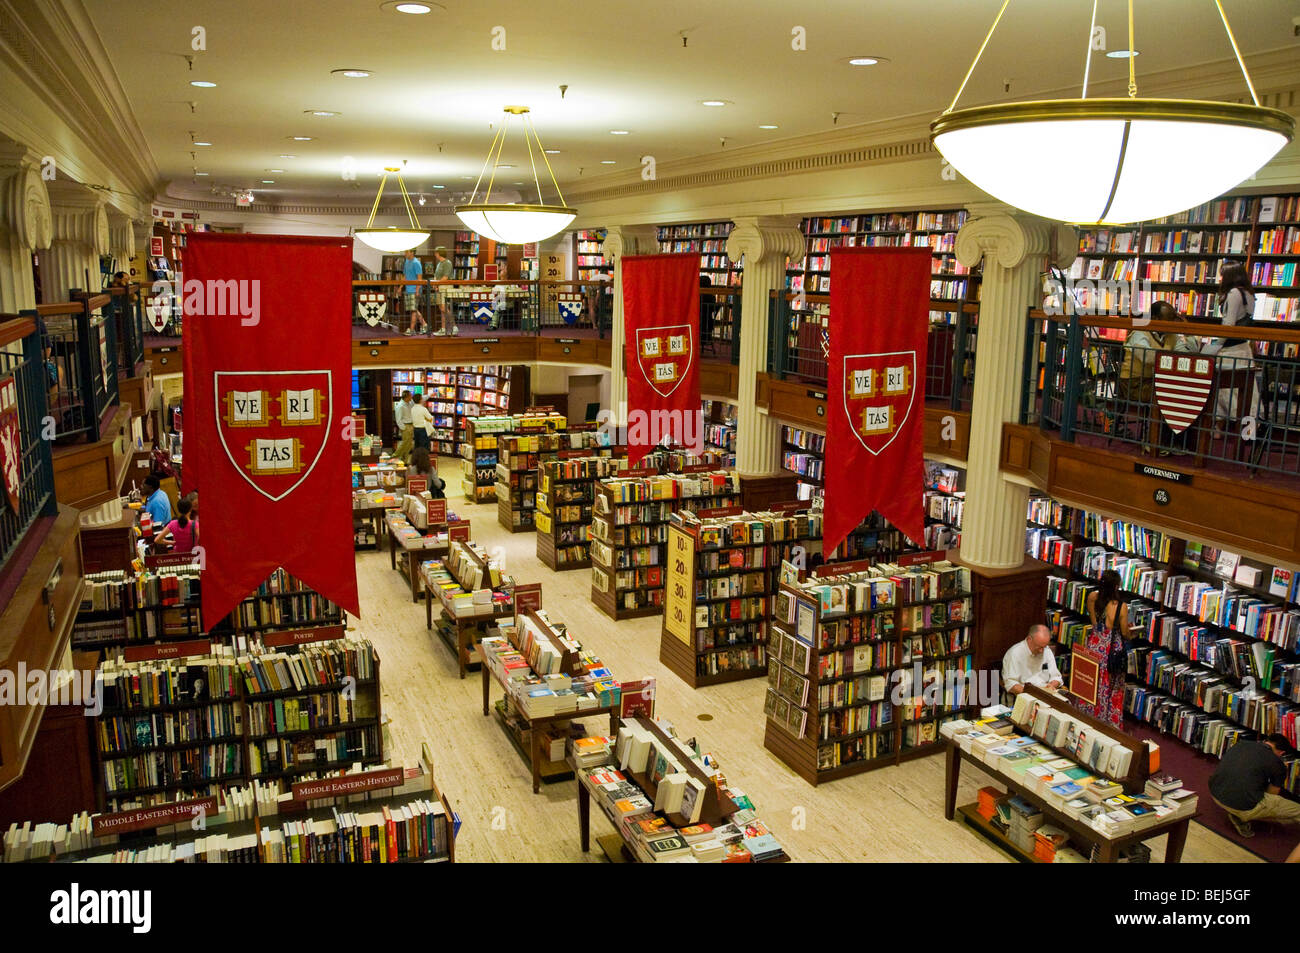 Harvard Bookstore on Harvard square Cambridge, Massachusetts - Stock Image